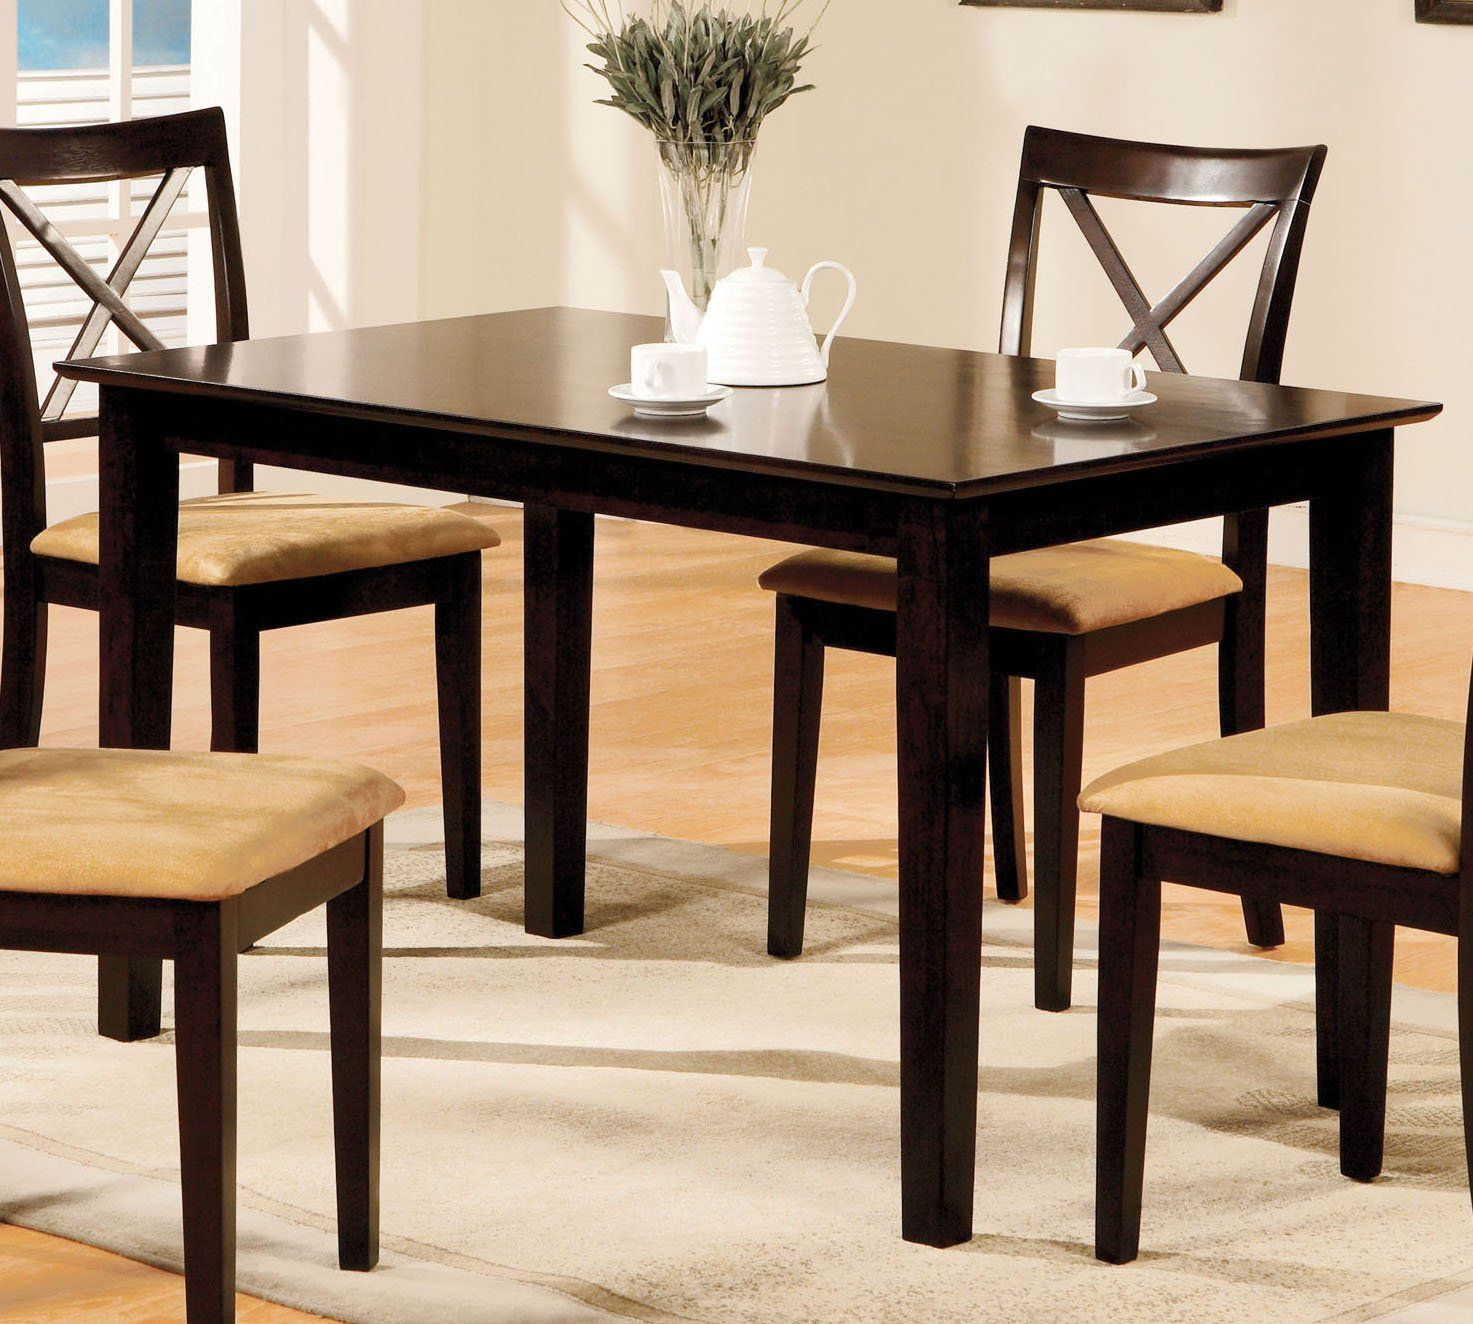 Furniture Of America Melbourne I Espresso Wood Finish Dining Table Dining Table Dimensions Dining Table Table